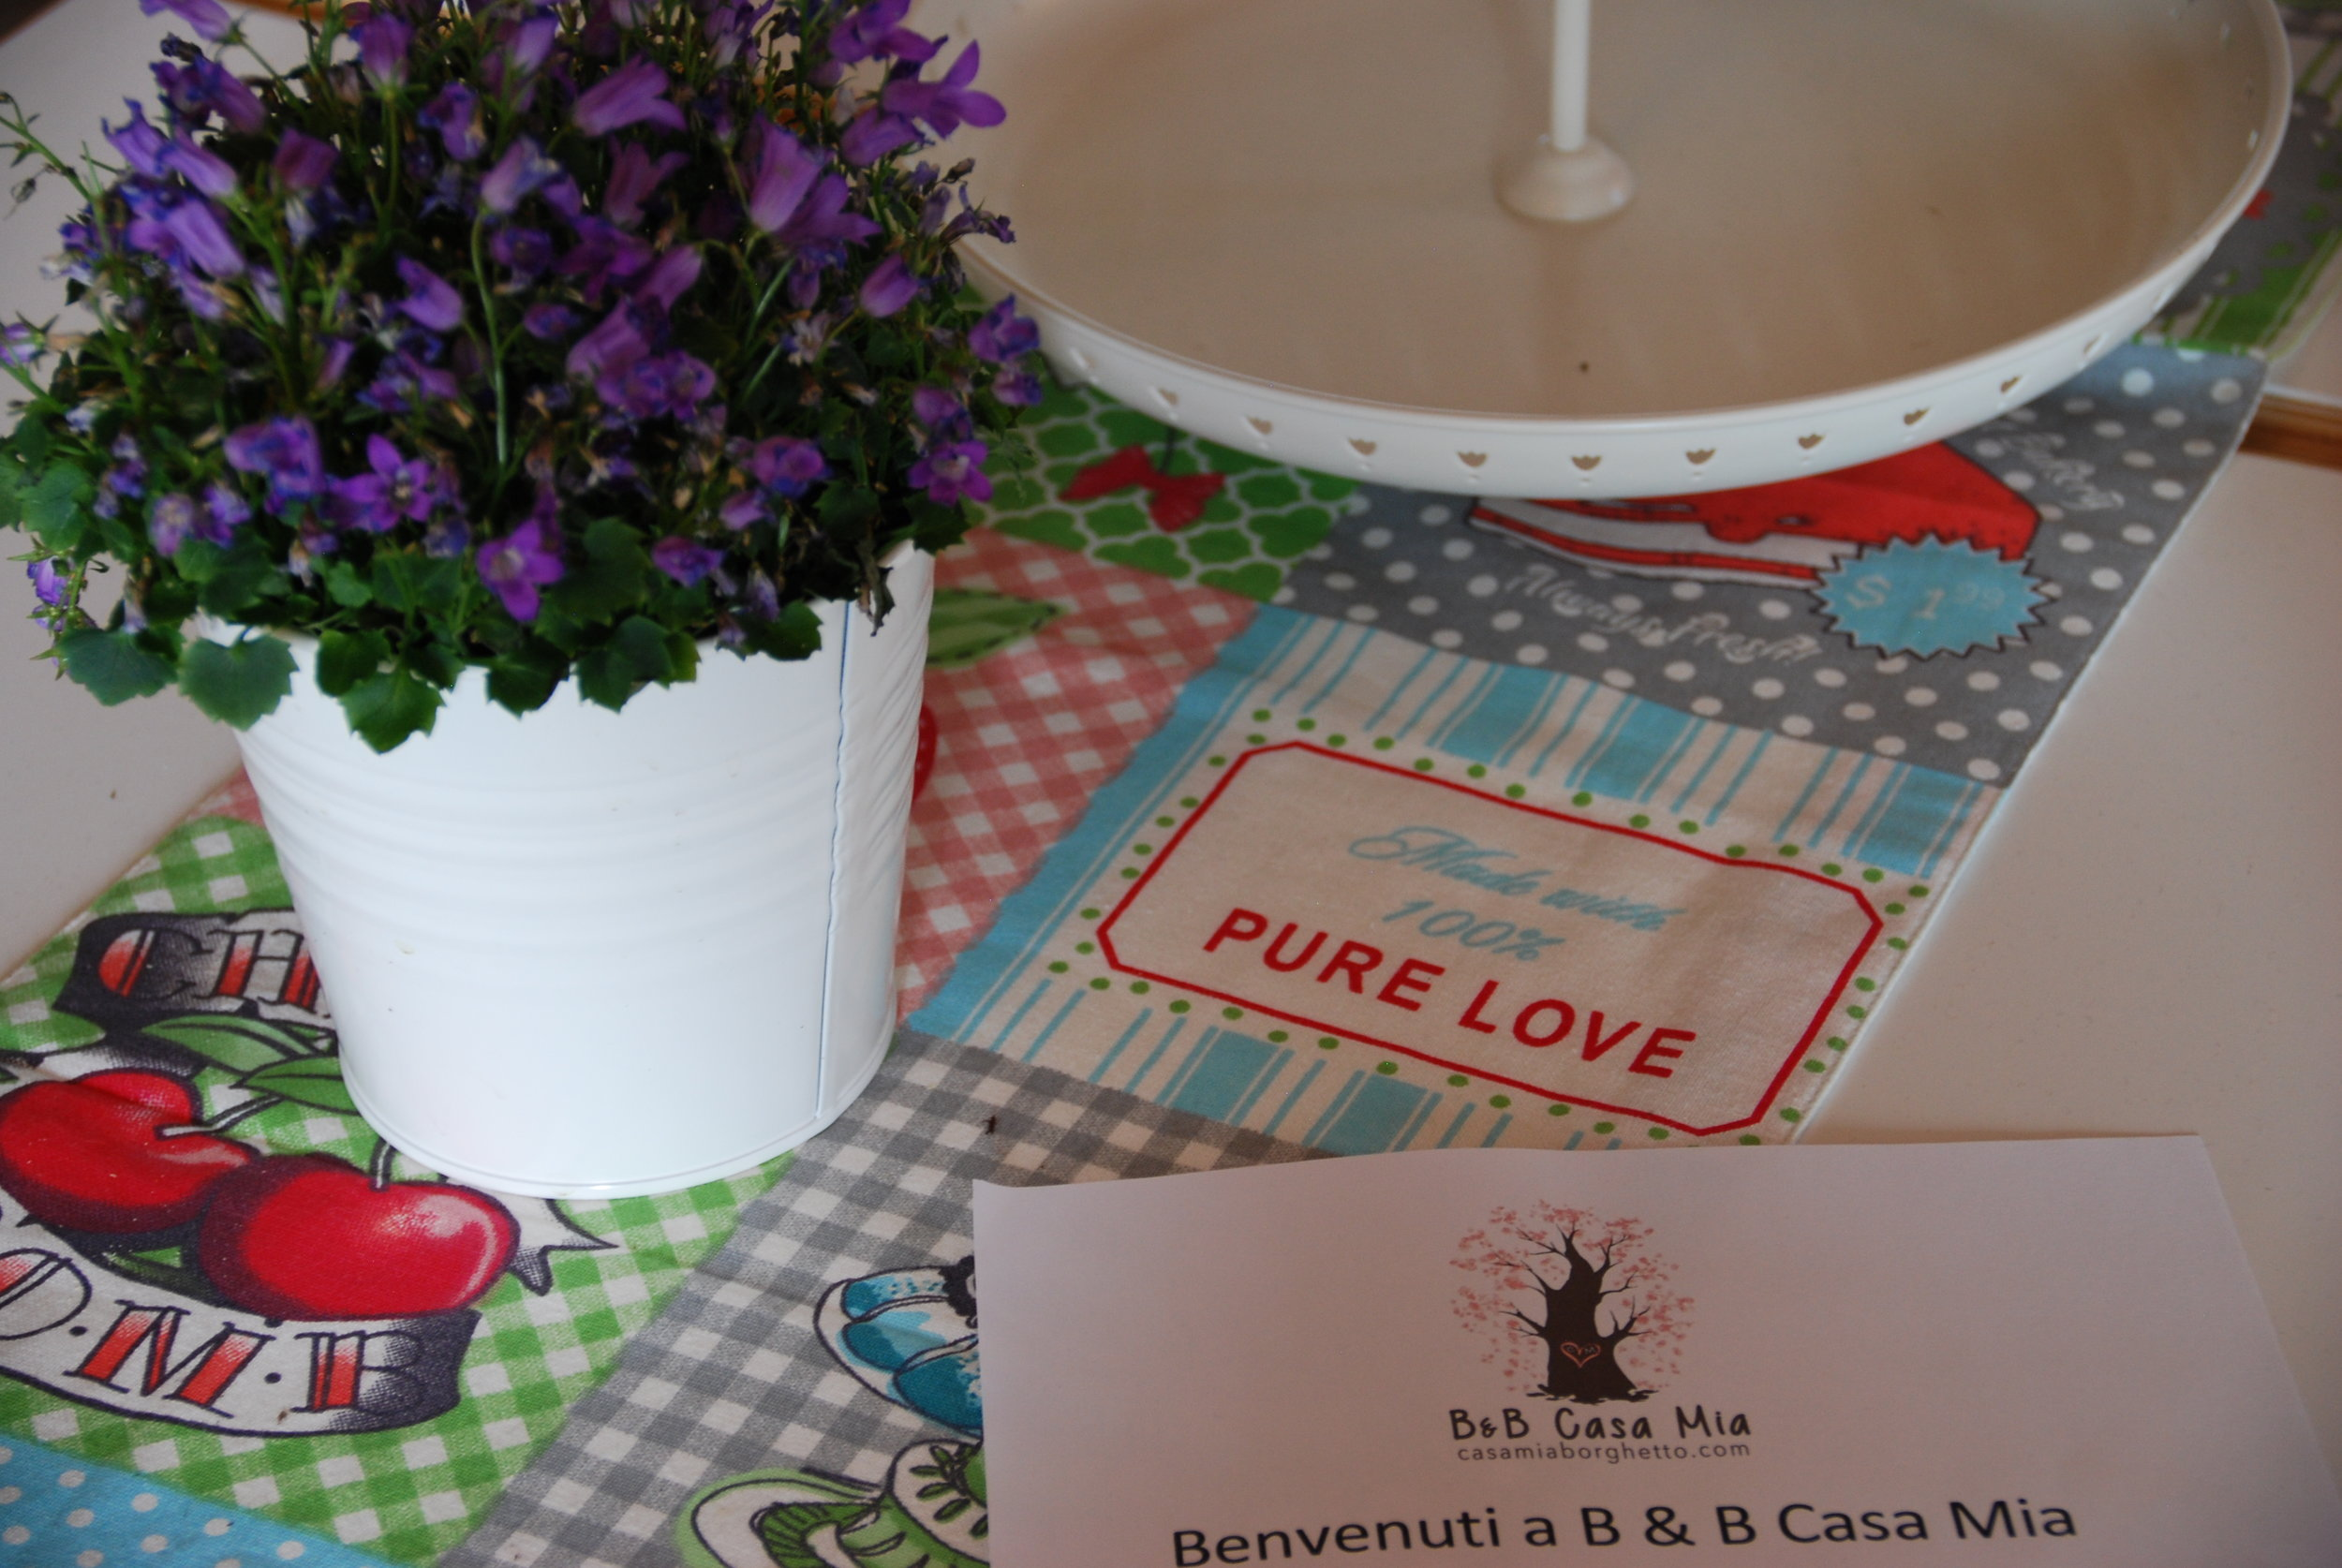 Bed and Breakfast Casa Mia  - Image: Emma Cuthbertson